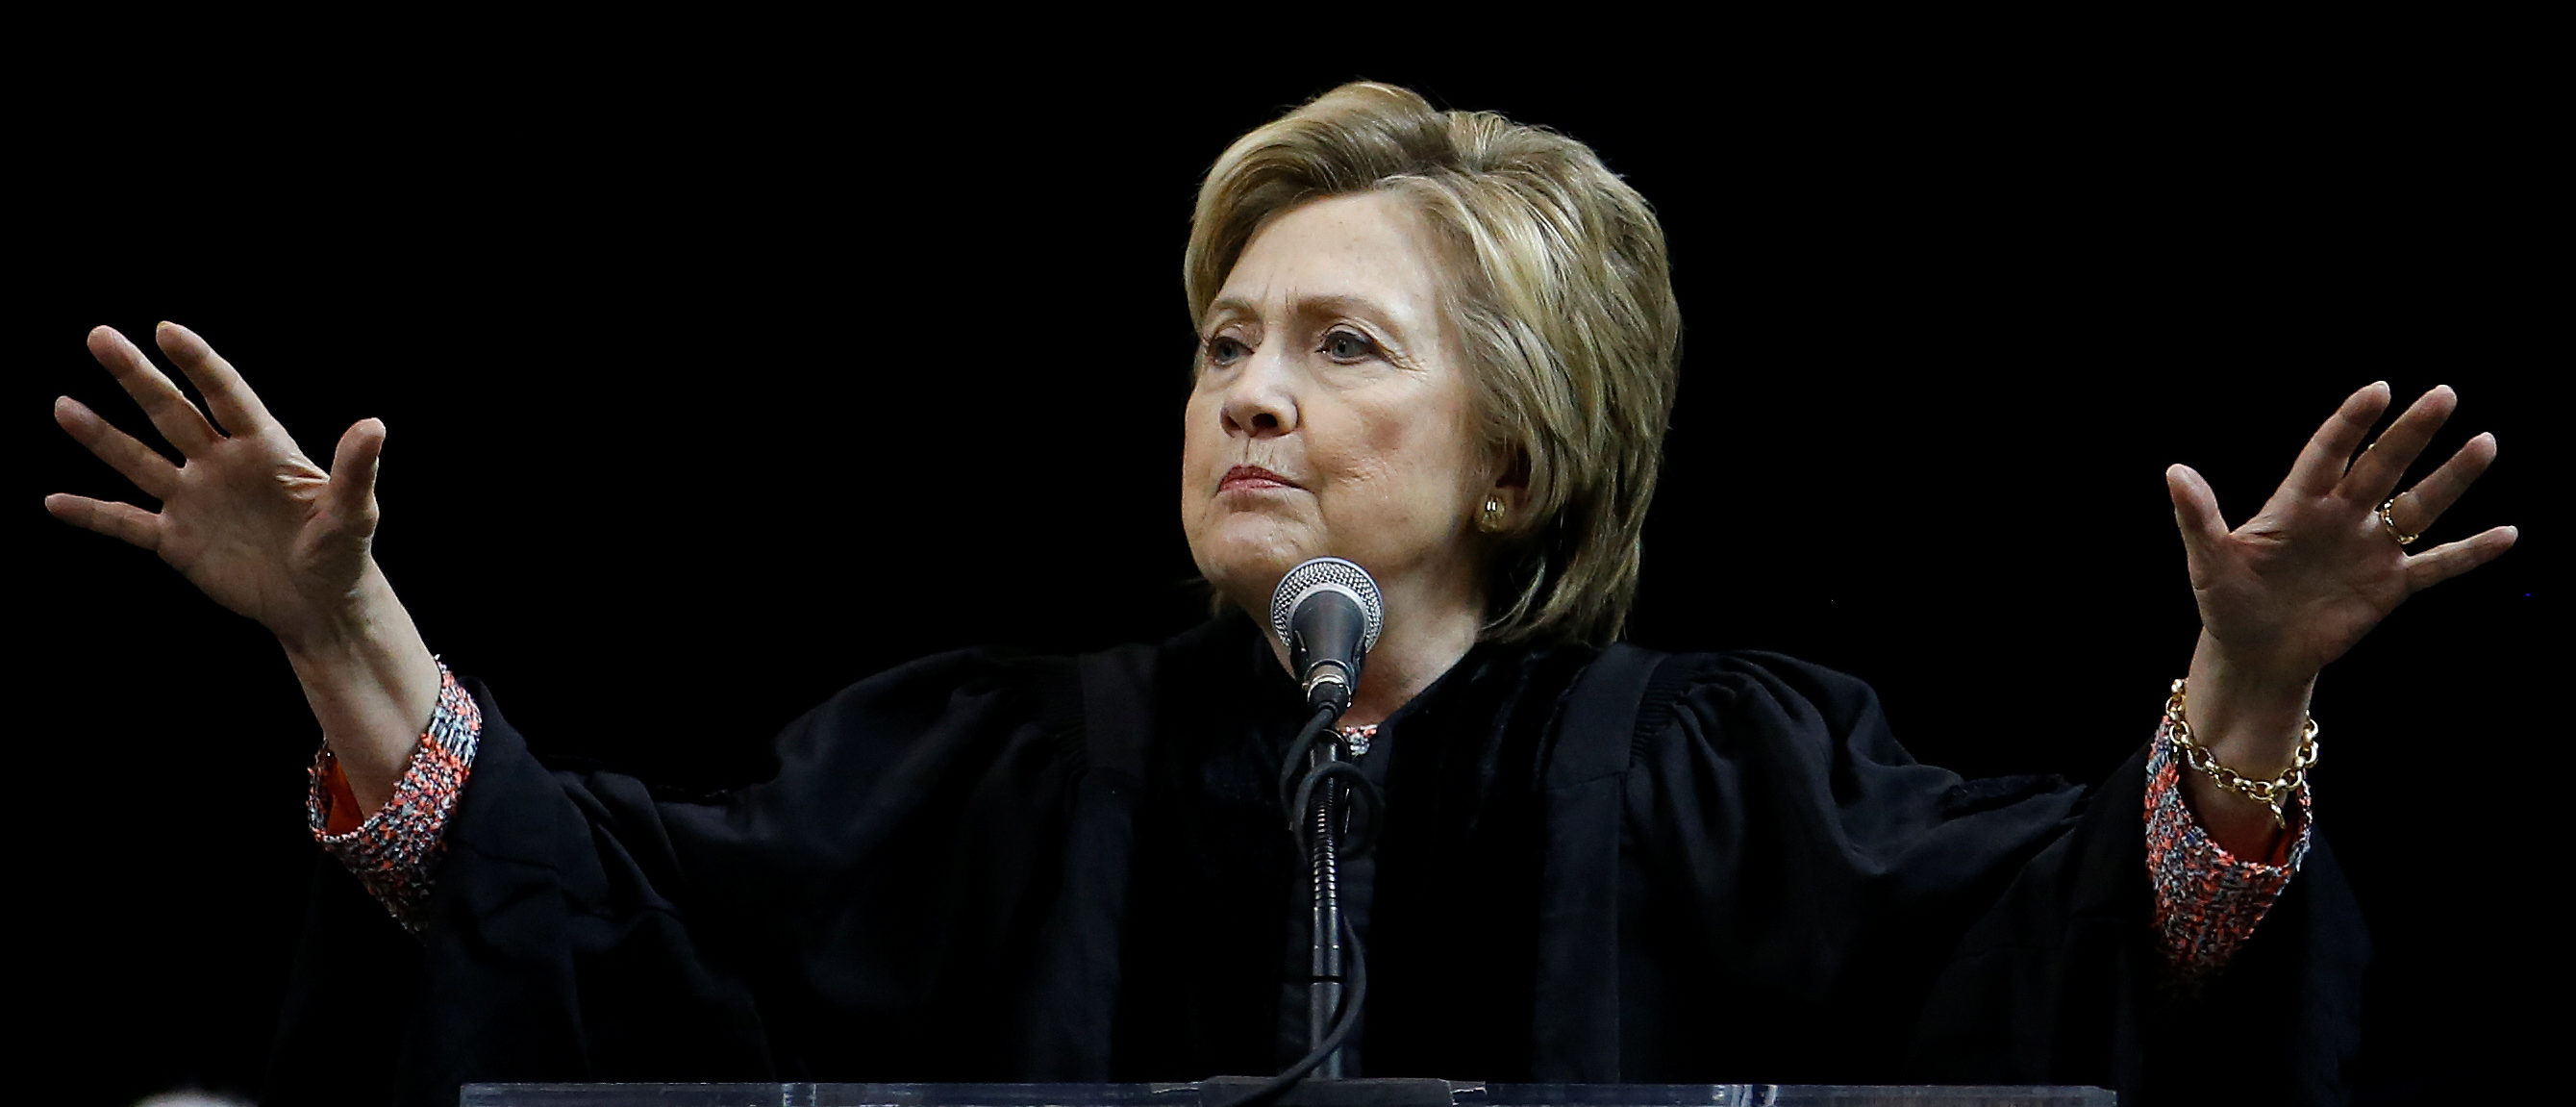 Former Secretary of State Hillary Clinton speaks on stage during a commencement for Medgar Evers College in the Brooklyn borough of New York City, New York, U.S. June 8, 2017. REUTERS/Carlo Allegri - RTX39OMC